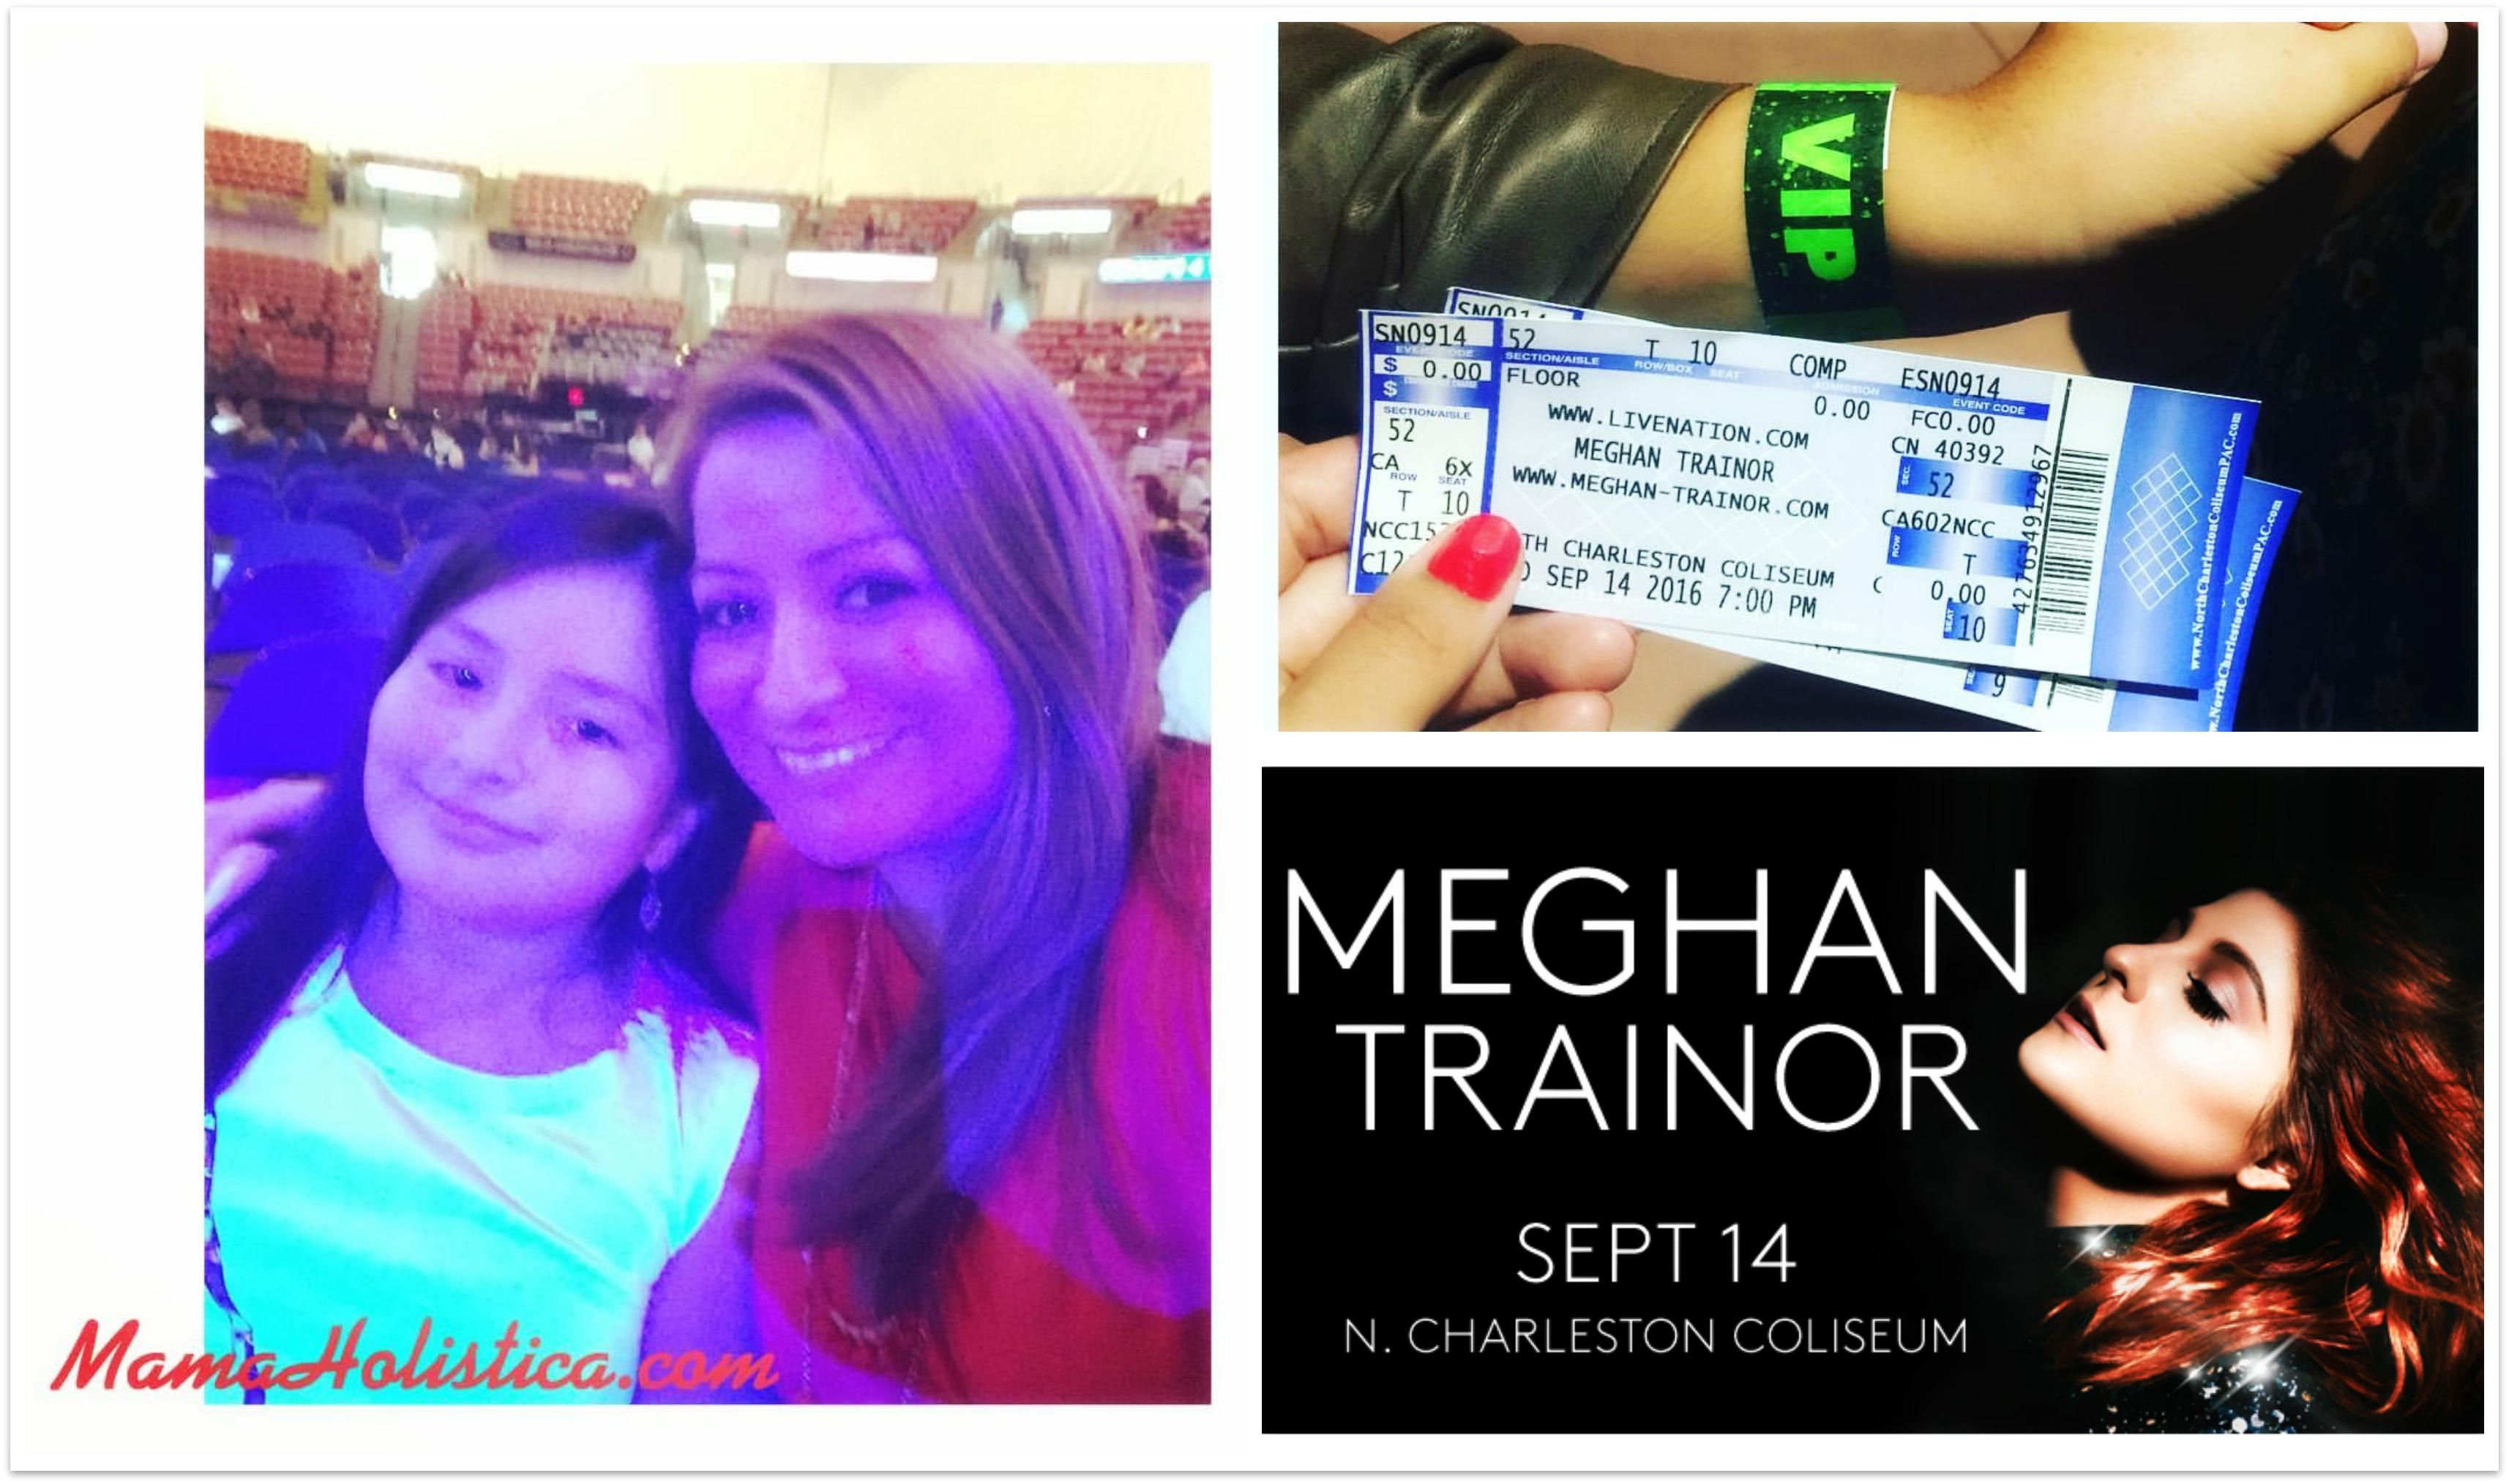 """Untouchable"" Tour con Meghan Trainor en Charleston #WearWhatYouWant"